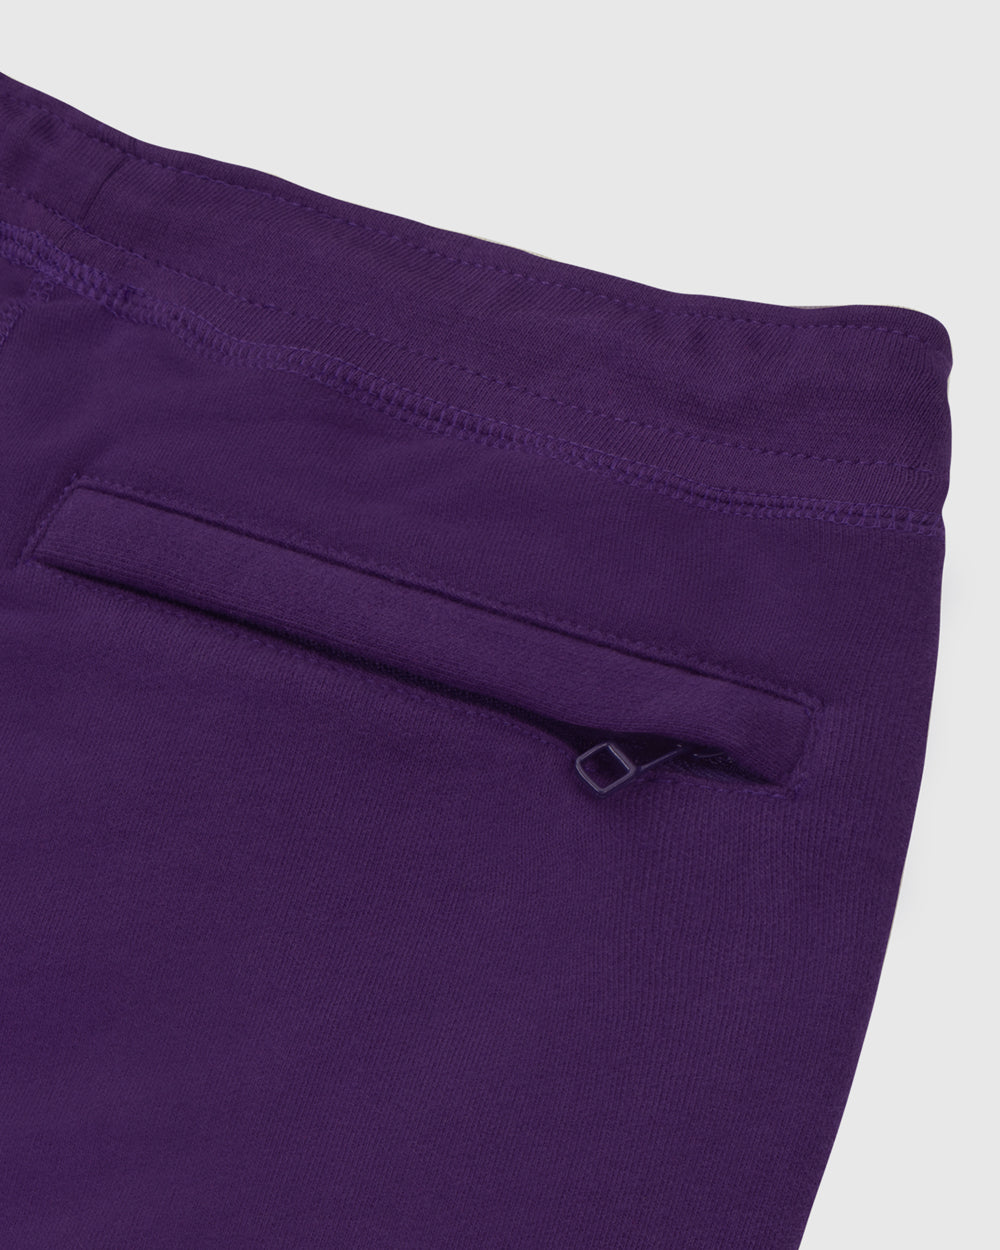 OVO FRENCH TERRY SWEATPANT - PURPLE